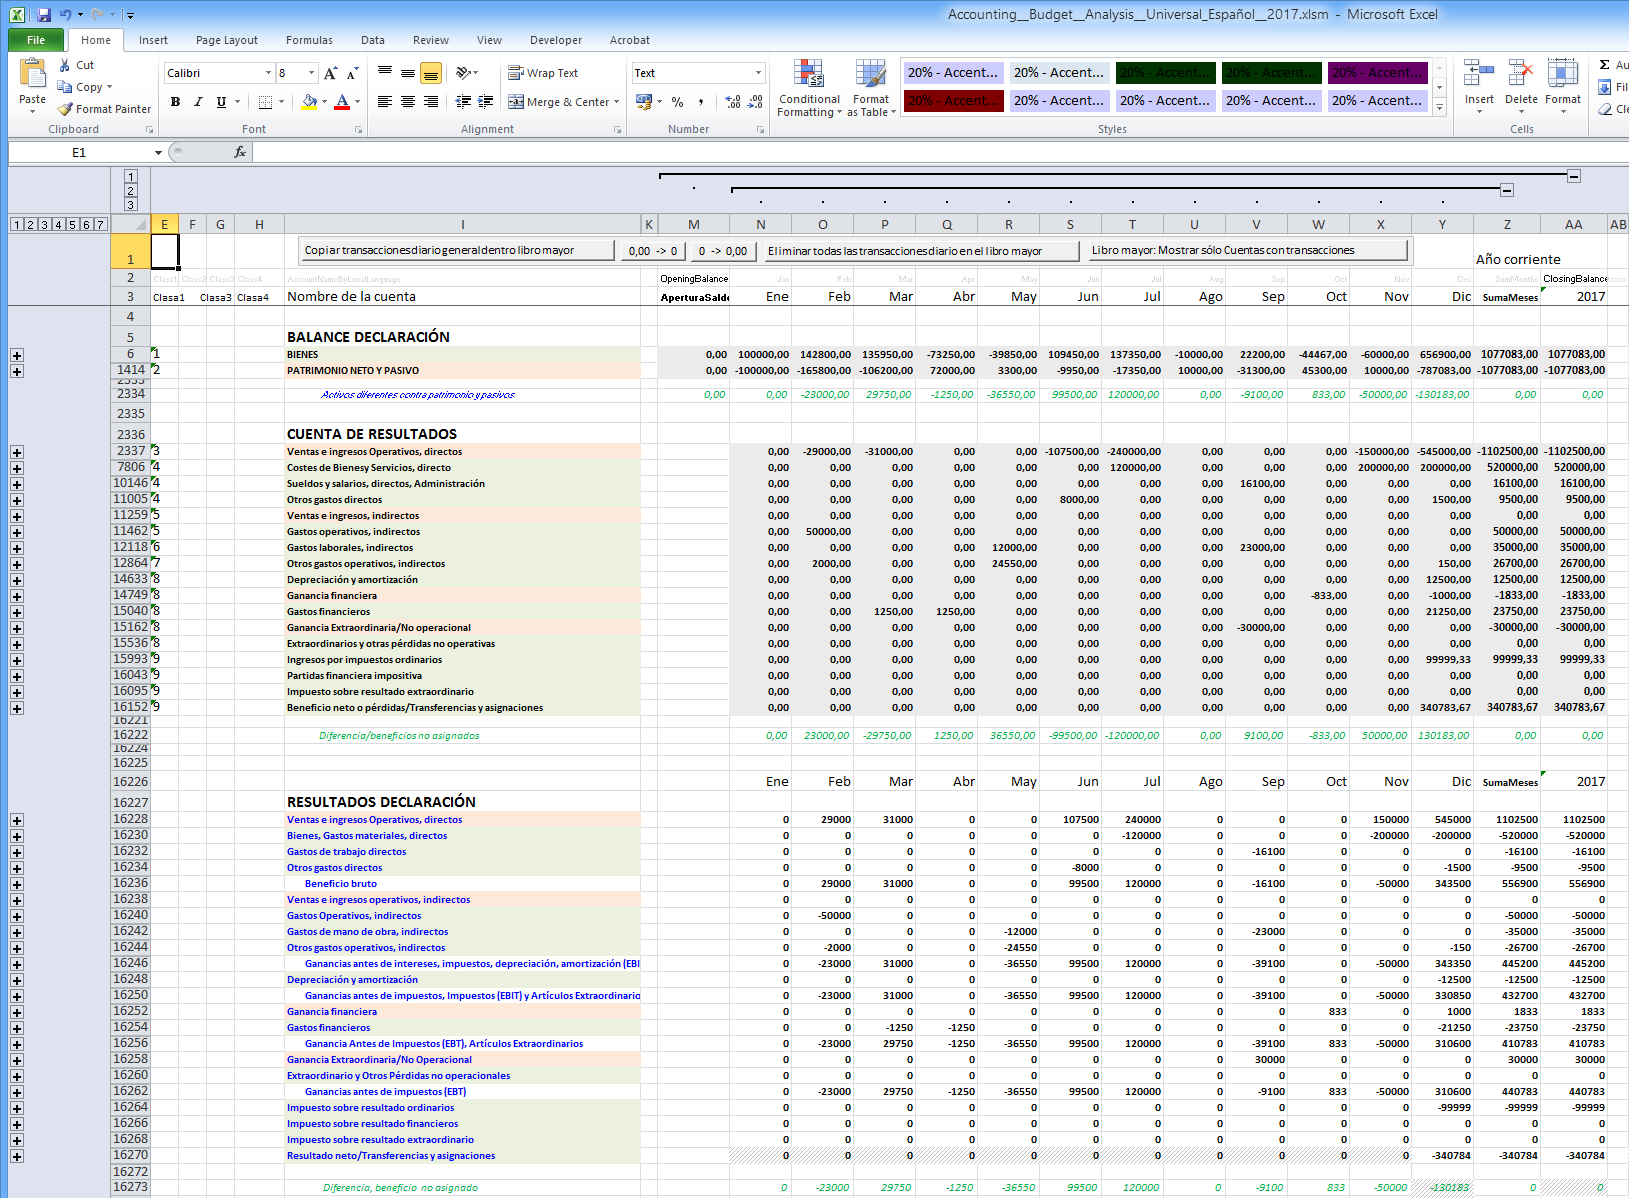 Excel Accounting Budgetysis